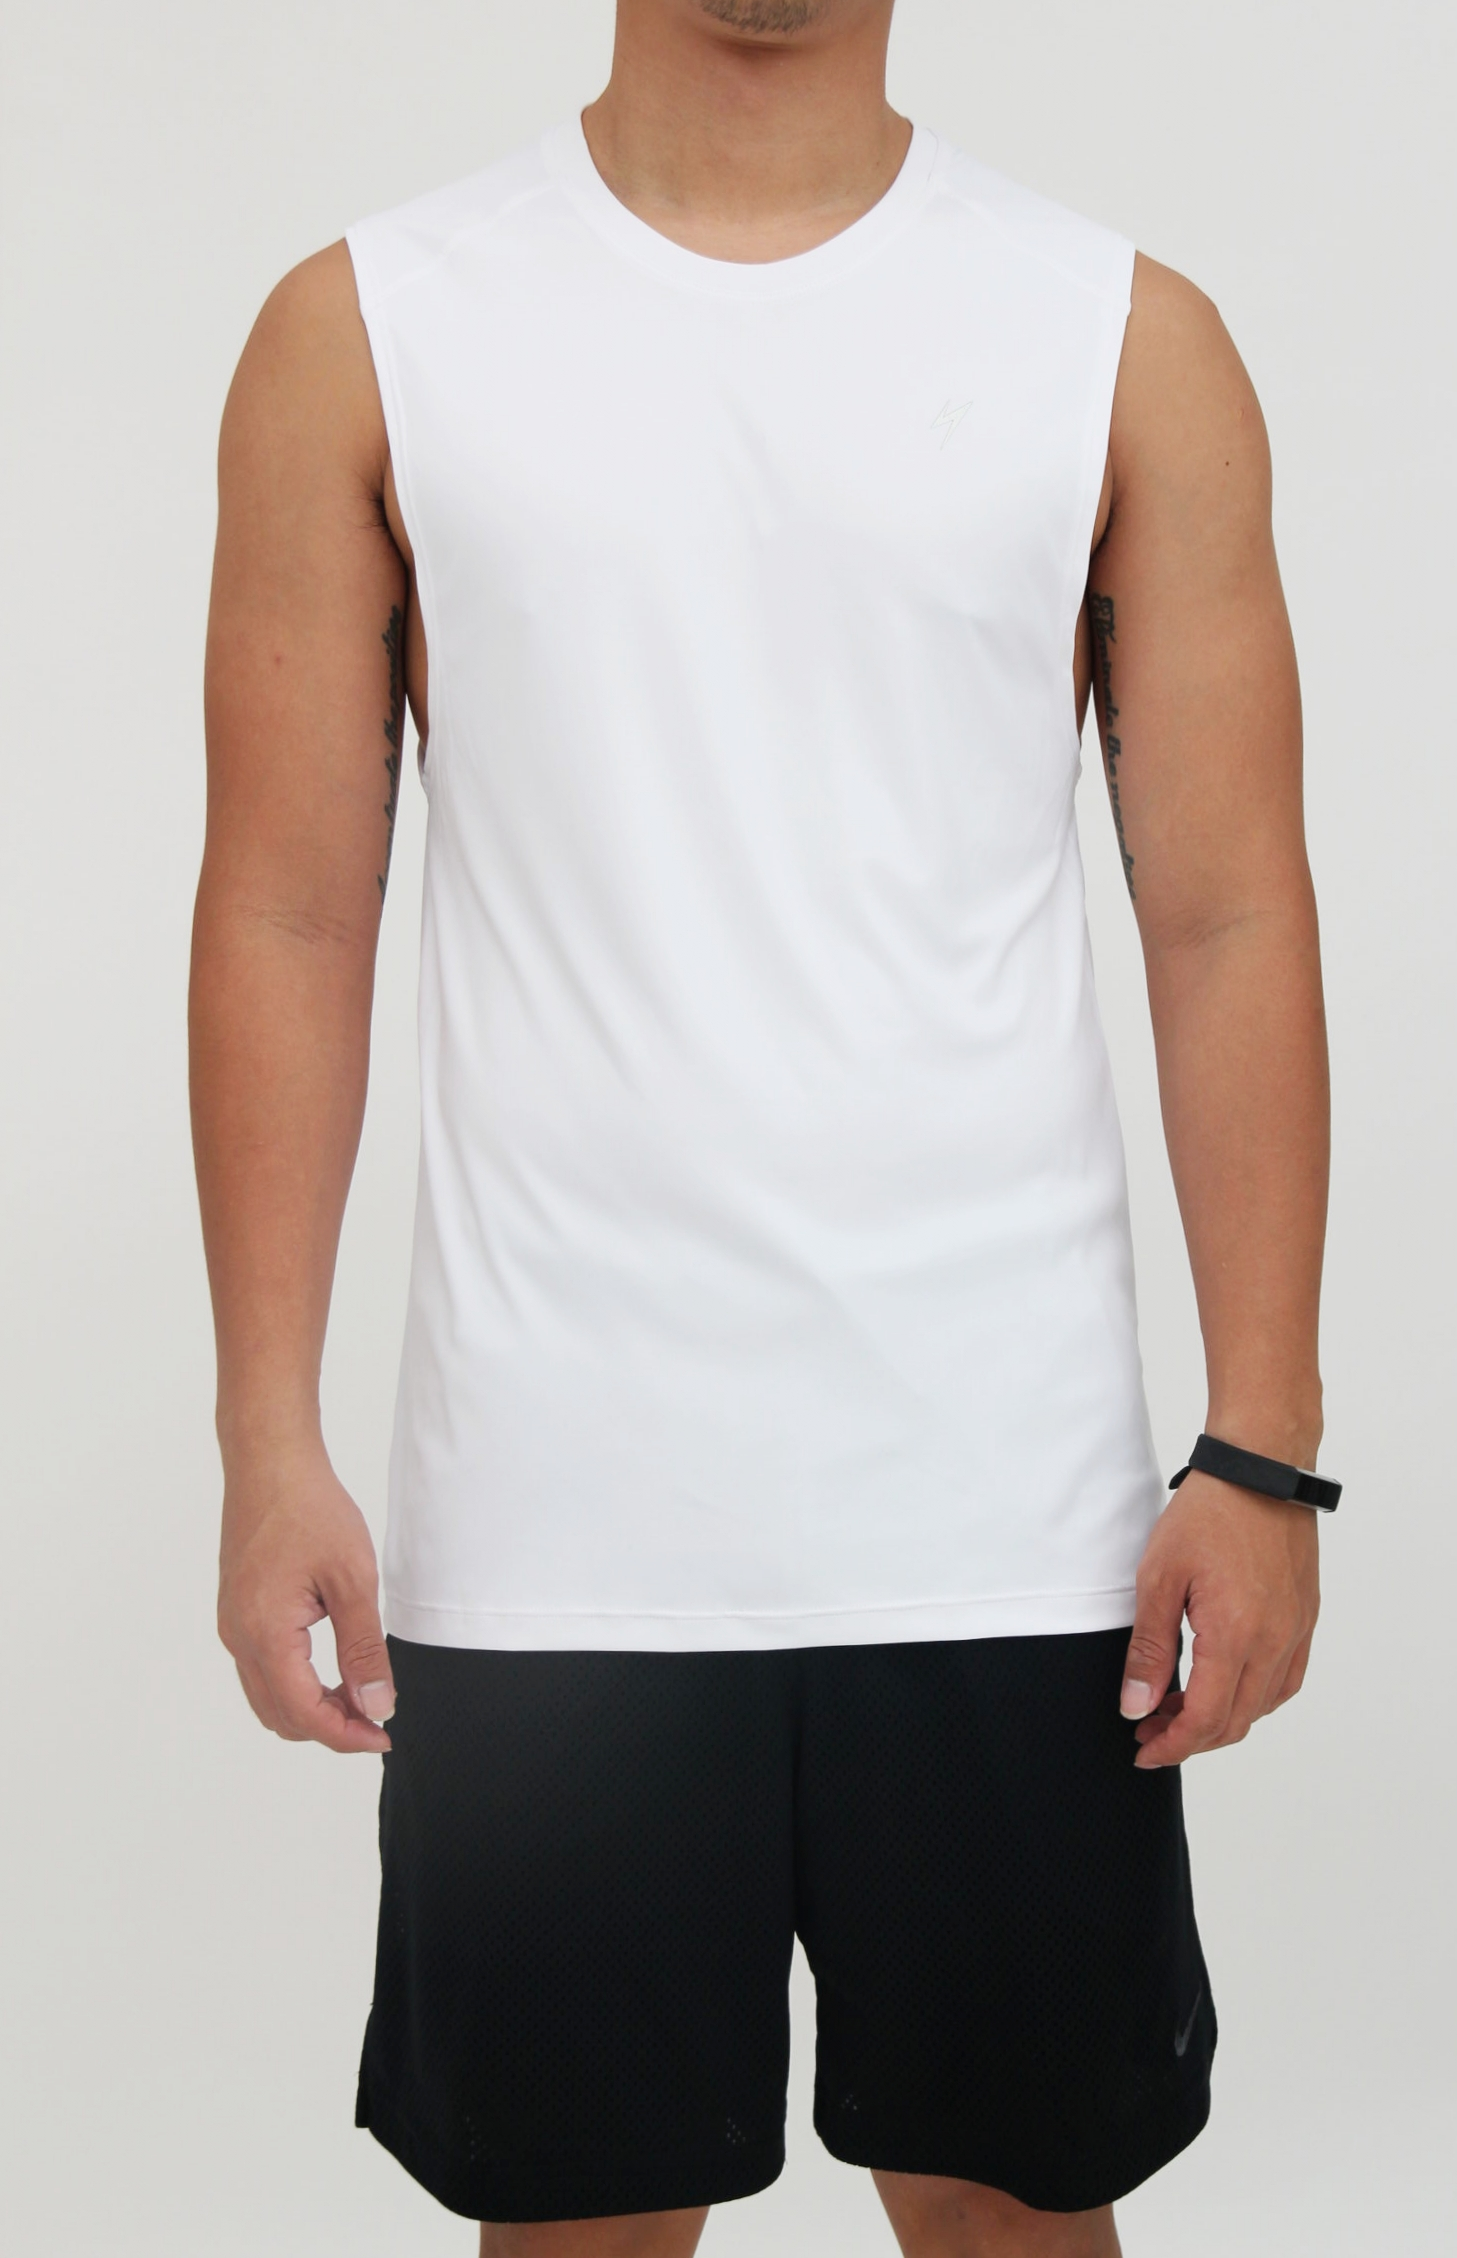 Men's top - Essential round neck muscle tank with low-cut armhole